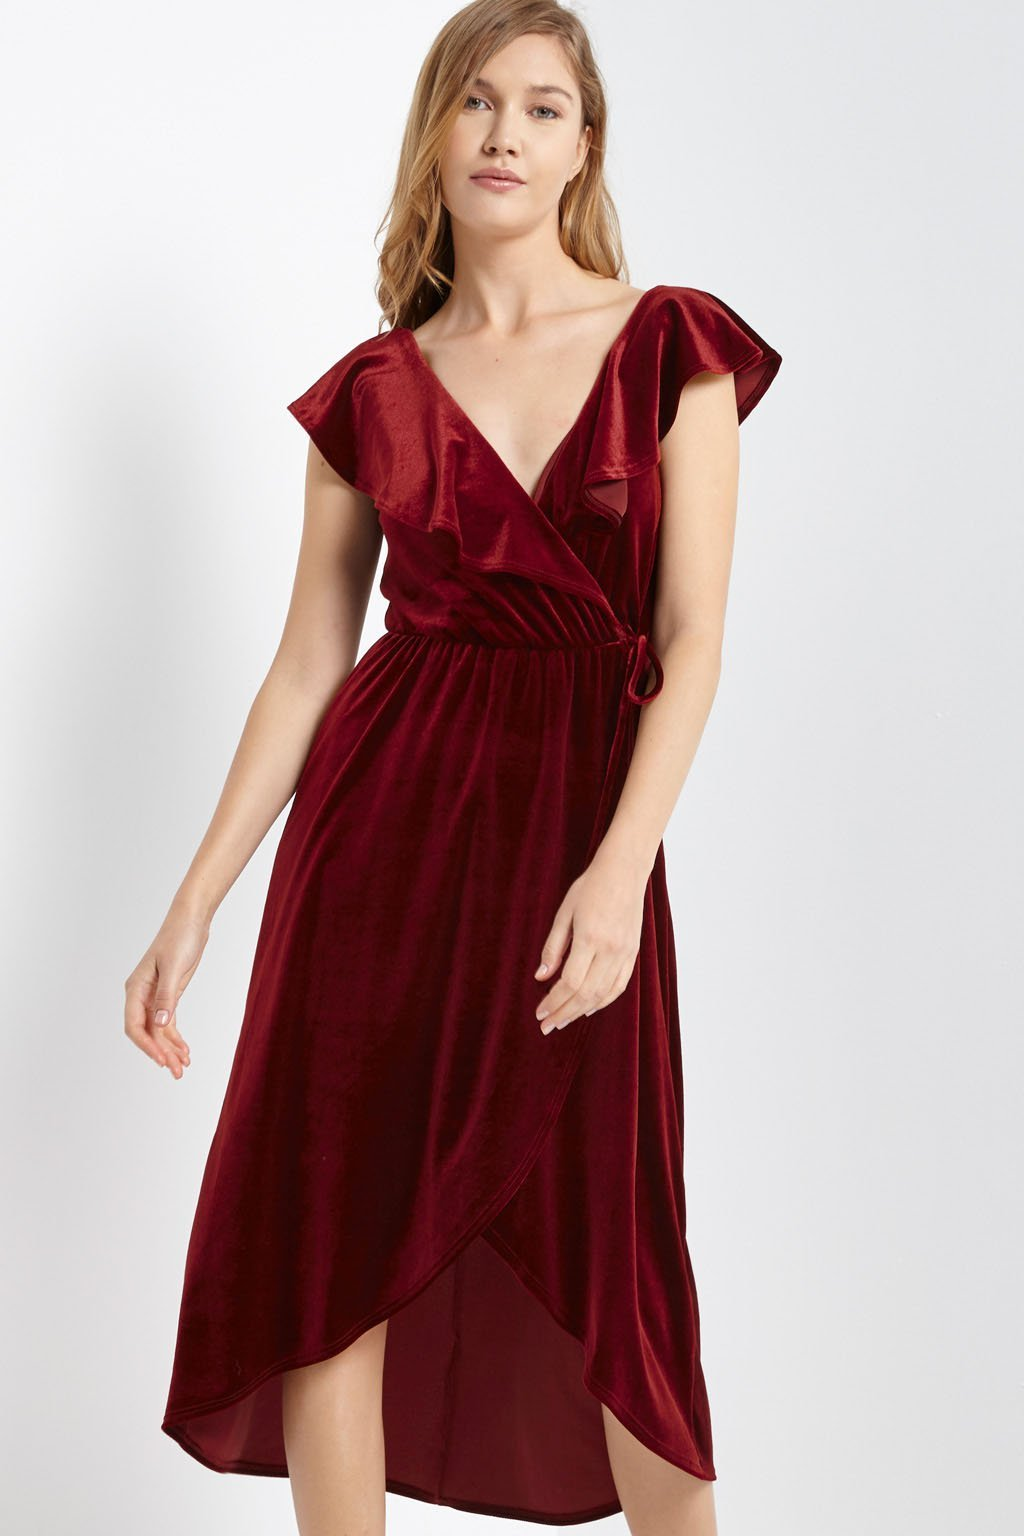 Poshsquare Dress Prim Velvet Ruffle Wrap Dress